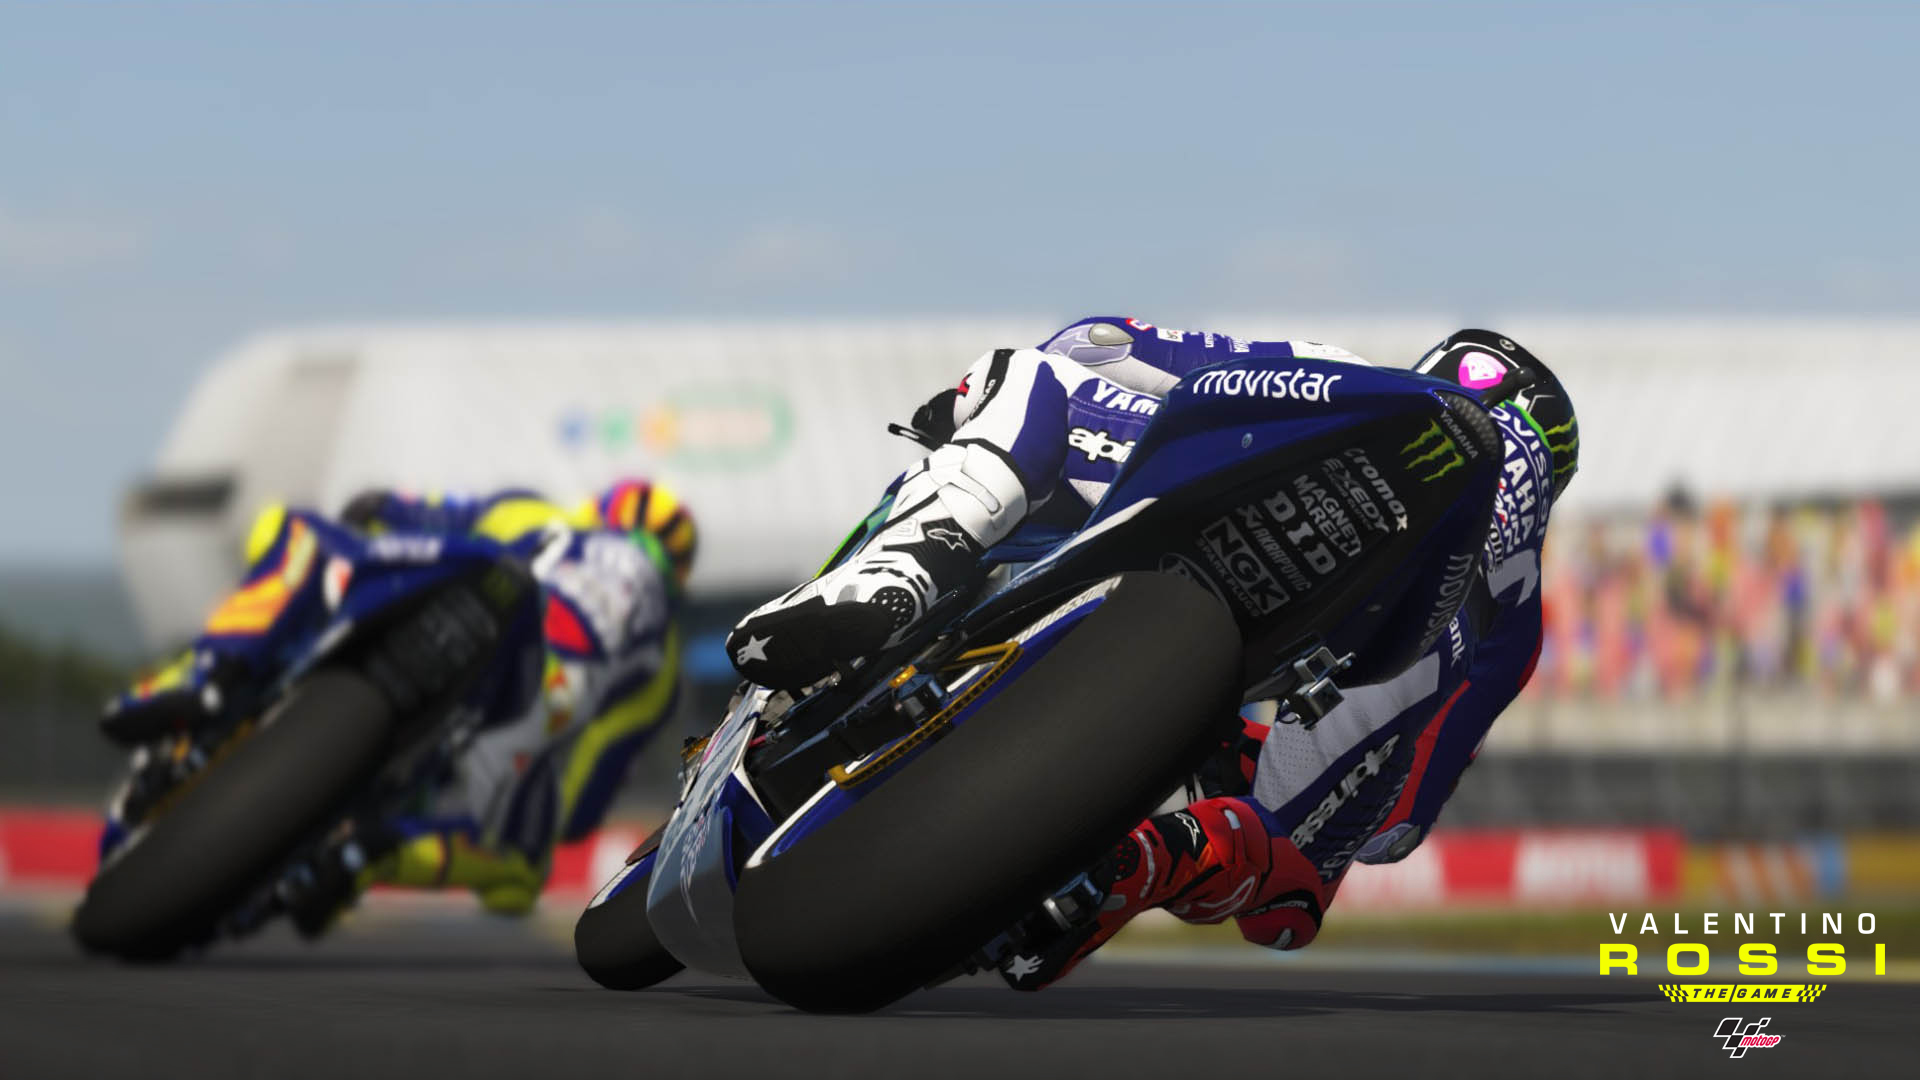 Real Events: 2015 MotoGP Season screenshot